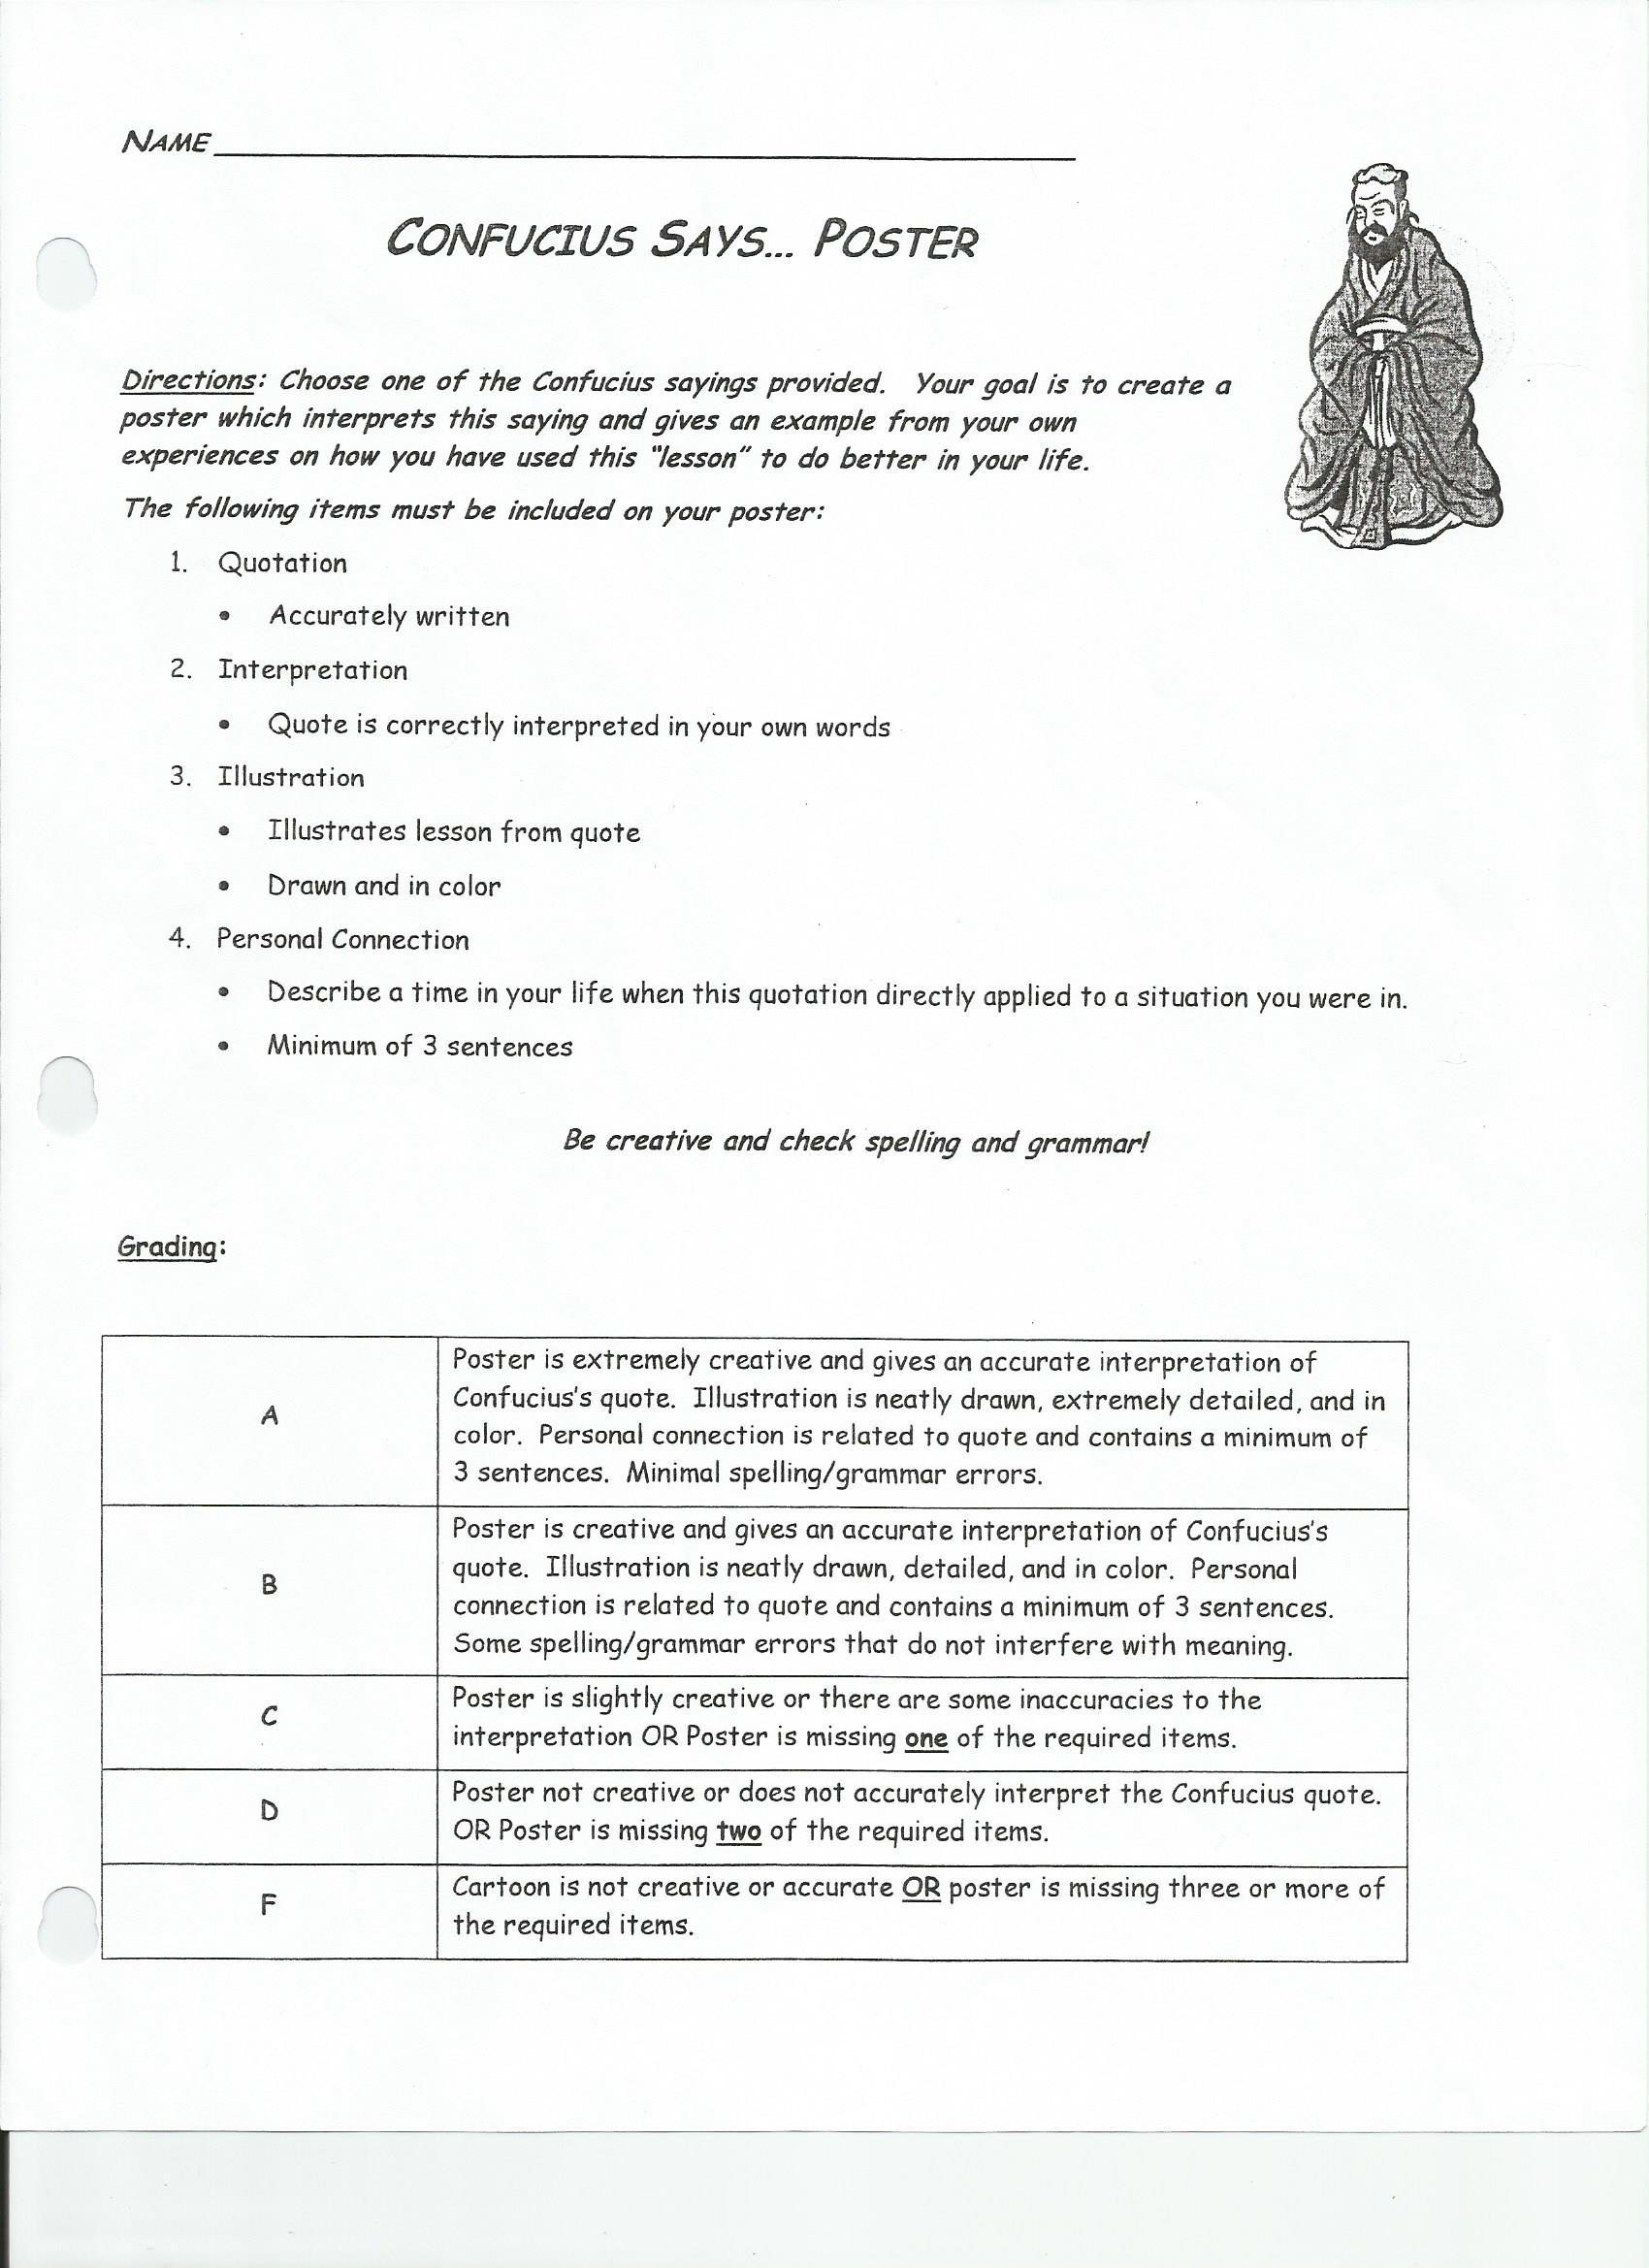 worksheet Confucius Says Worksheet kongkeattikul diana 7c ancient civilizations china worksheet and timeline confucius says poster rubric page 1